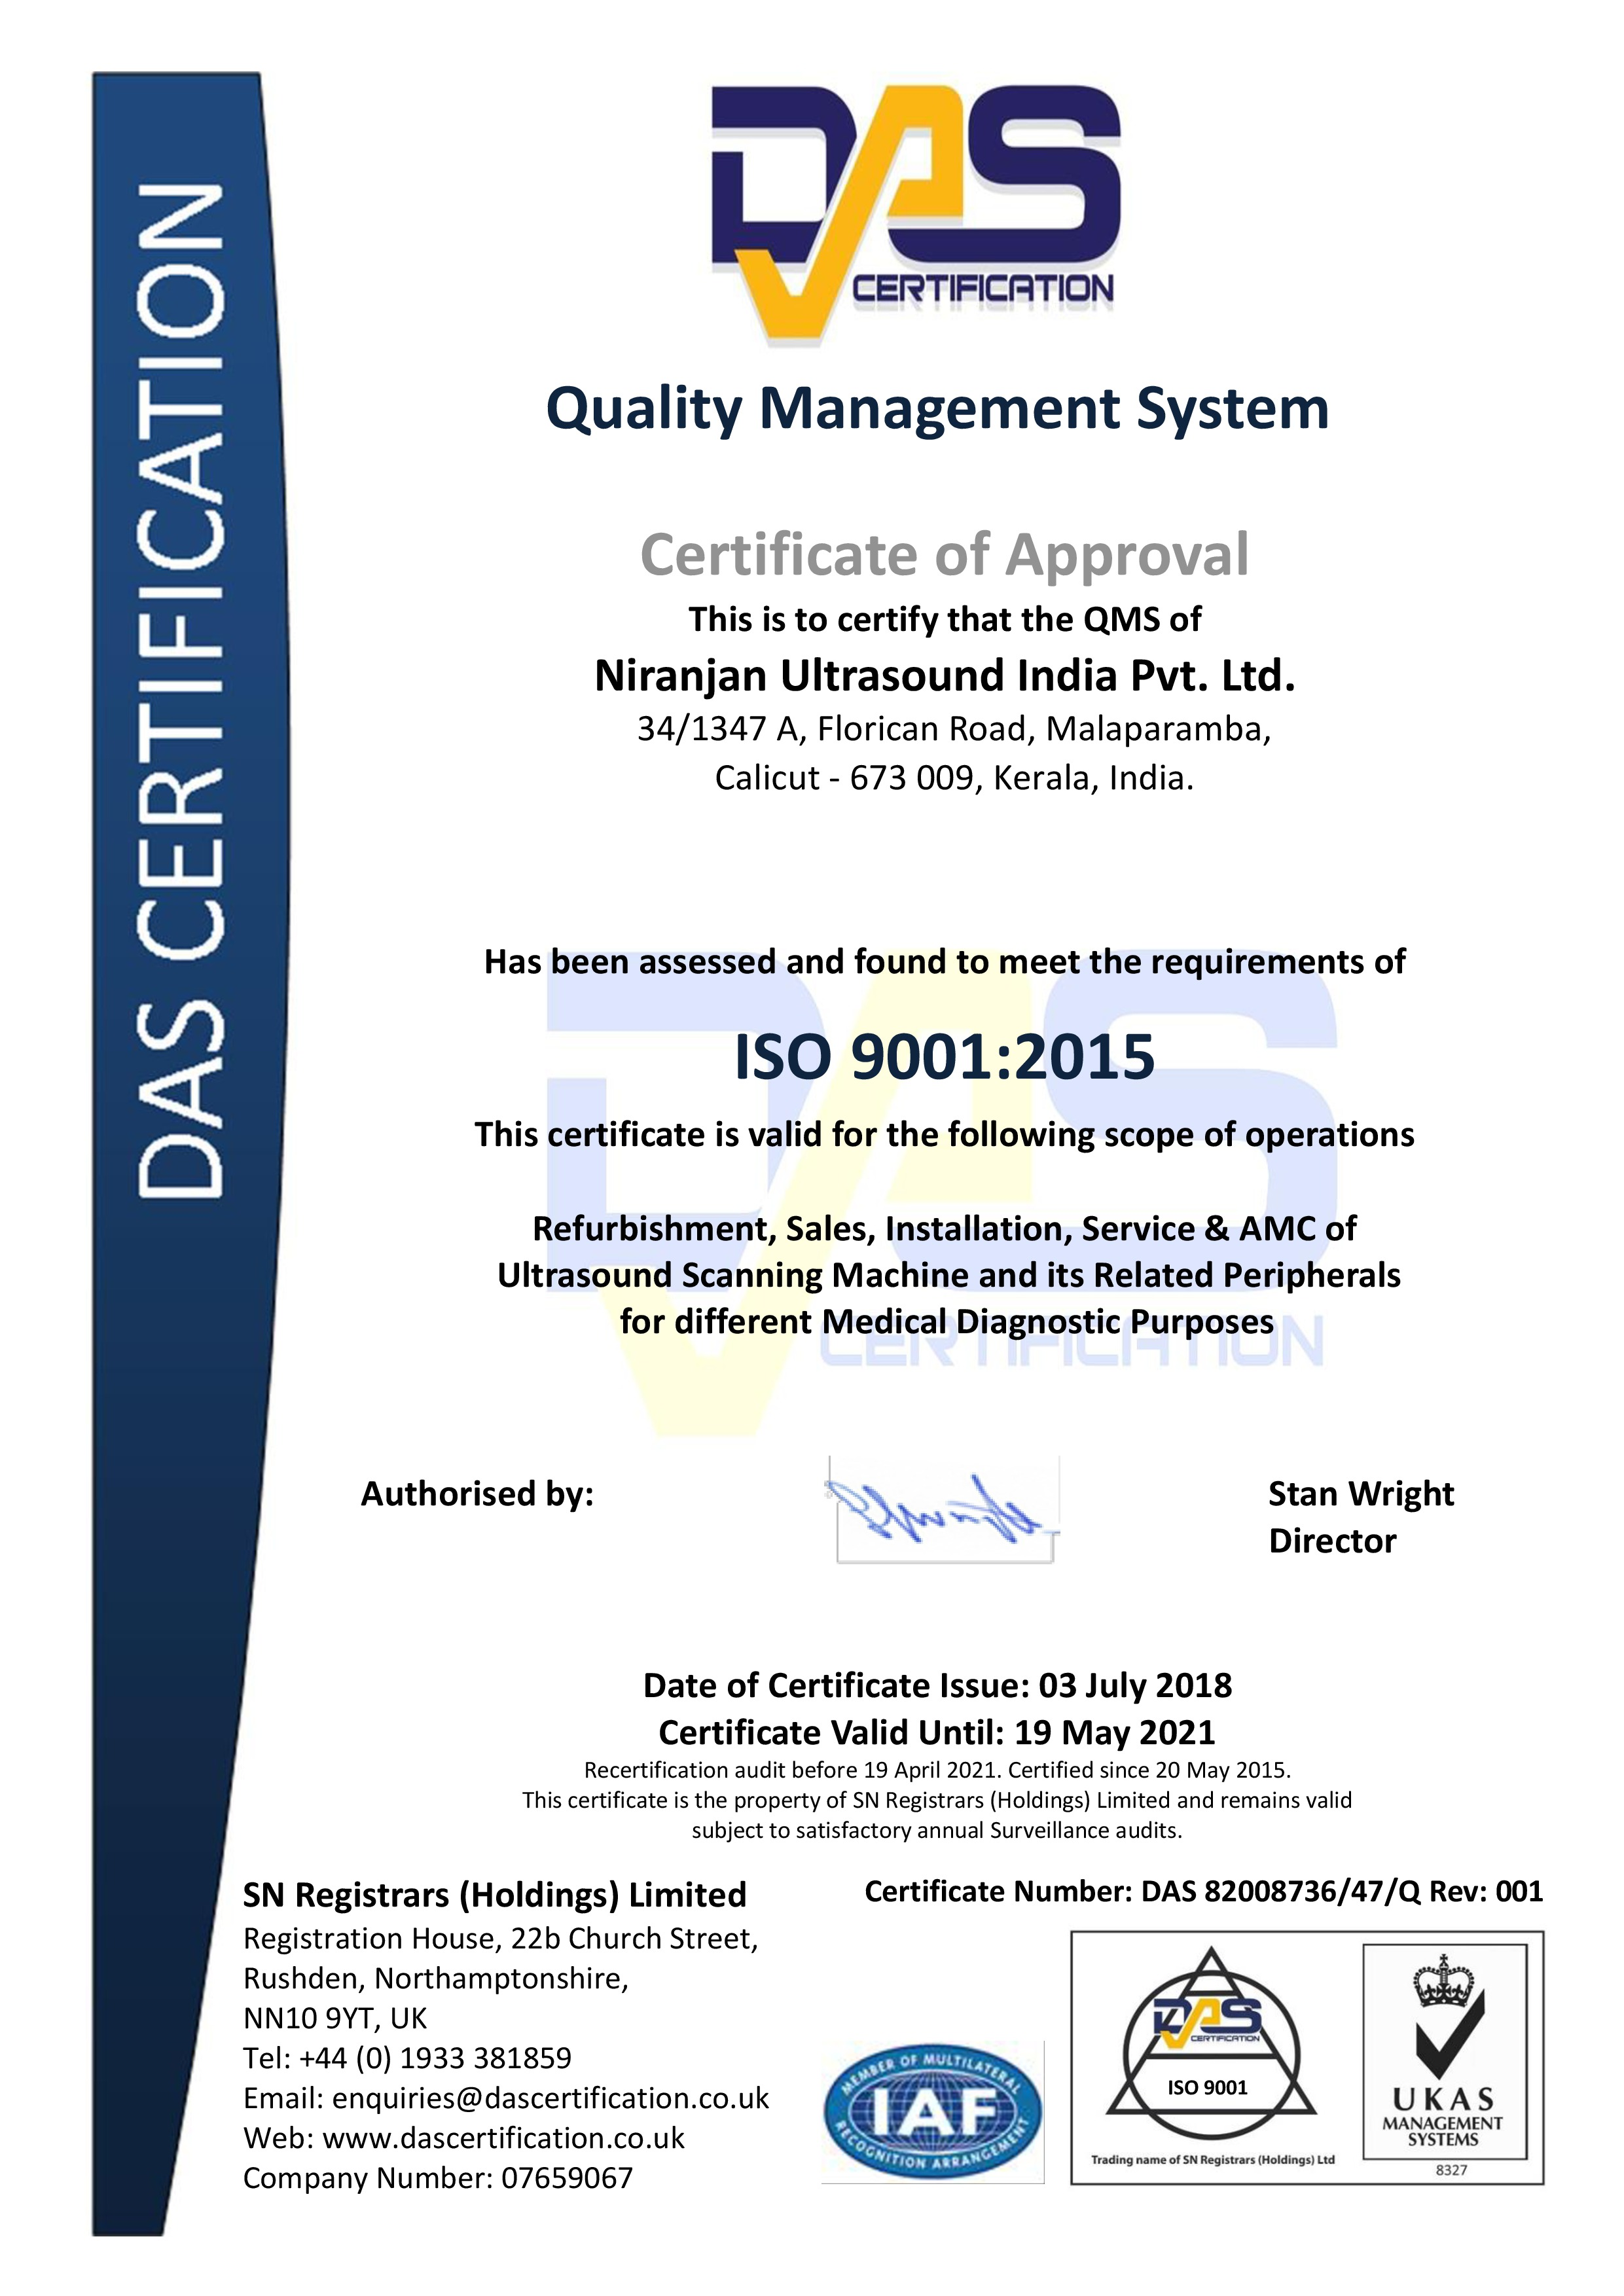 ISO 9001:2015 Certificate of NUIPL